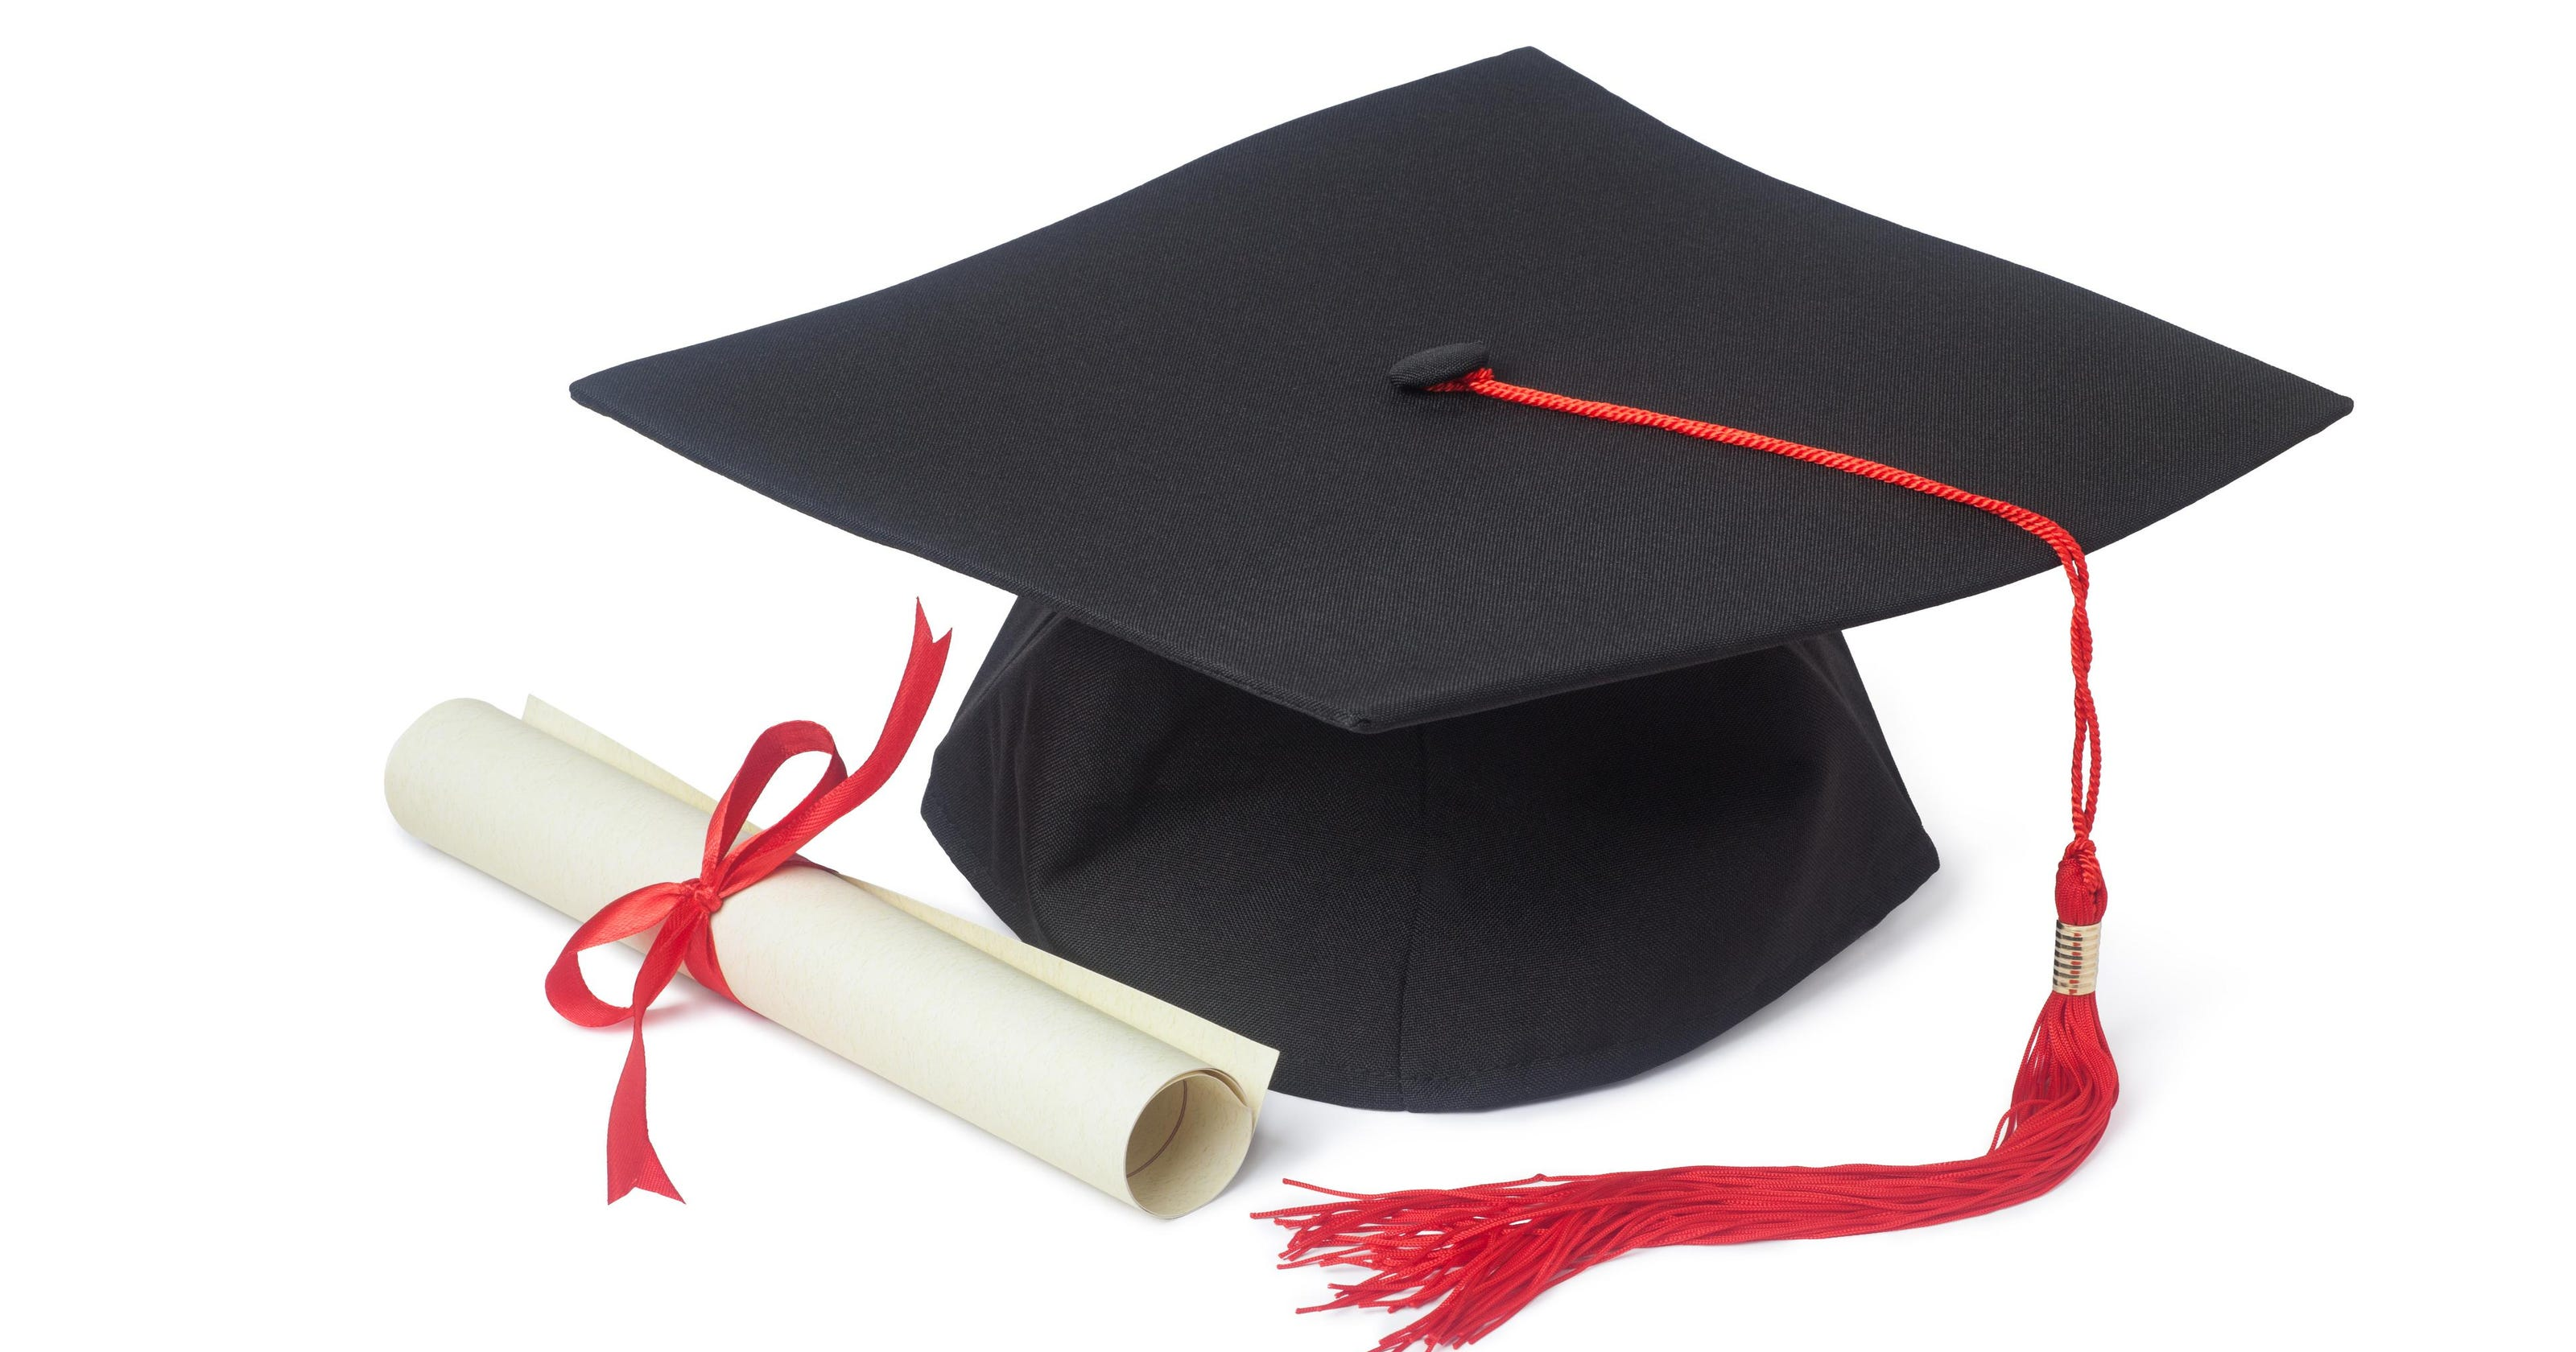 concern about new graduation requirements grows